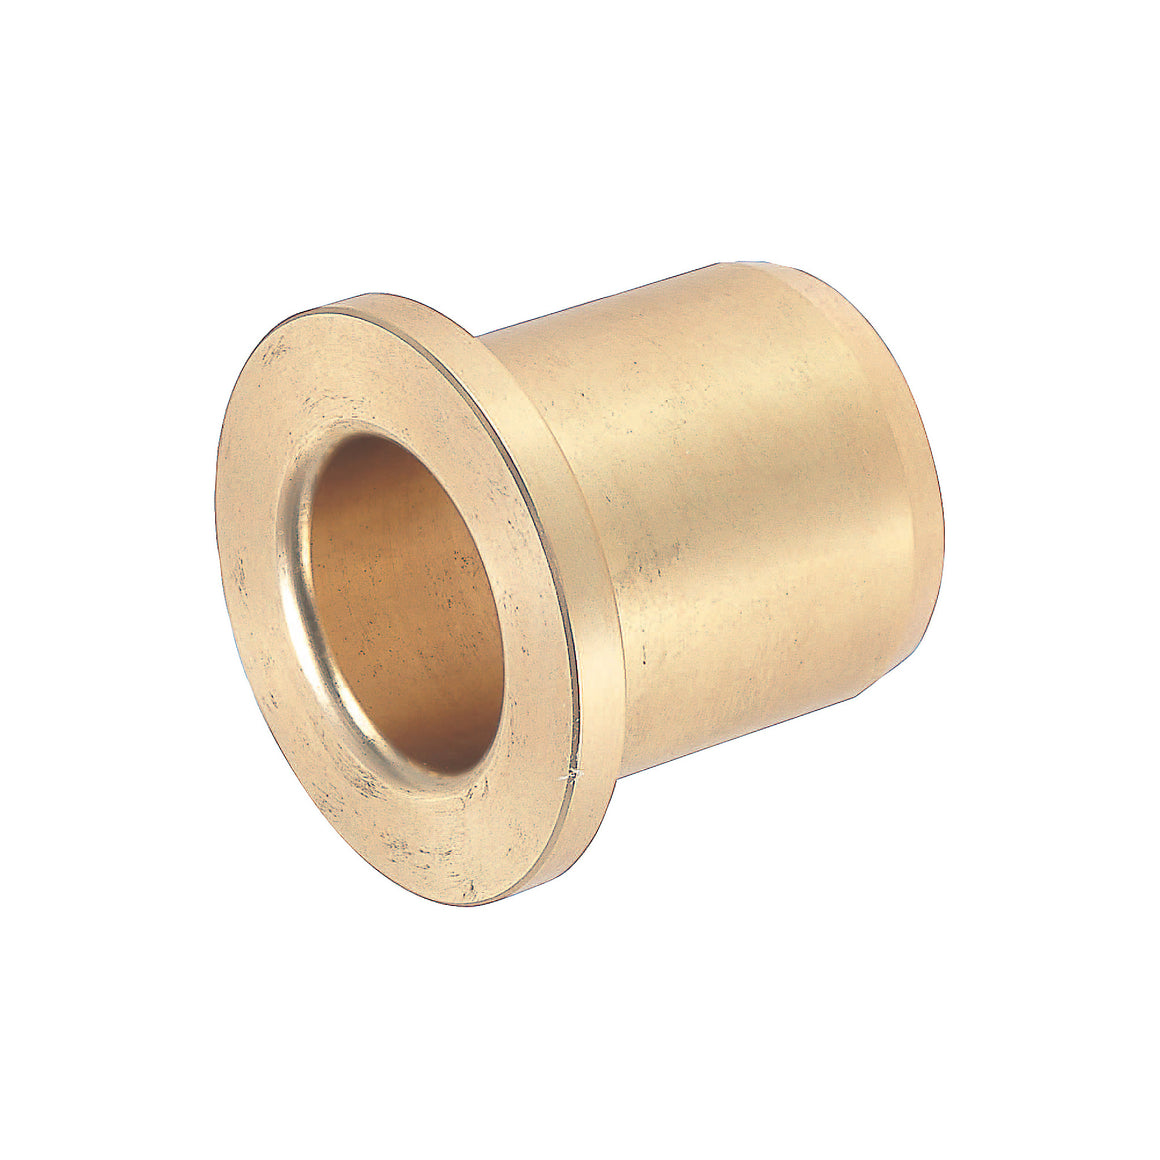 Brass Knuckle bushing - Top Hat style